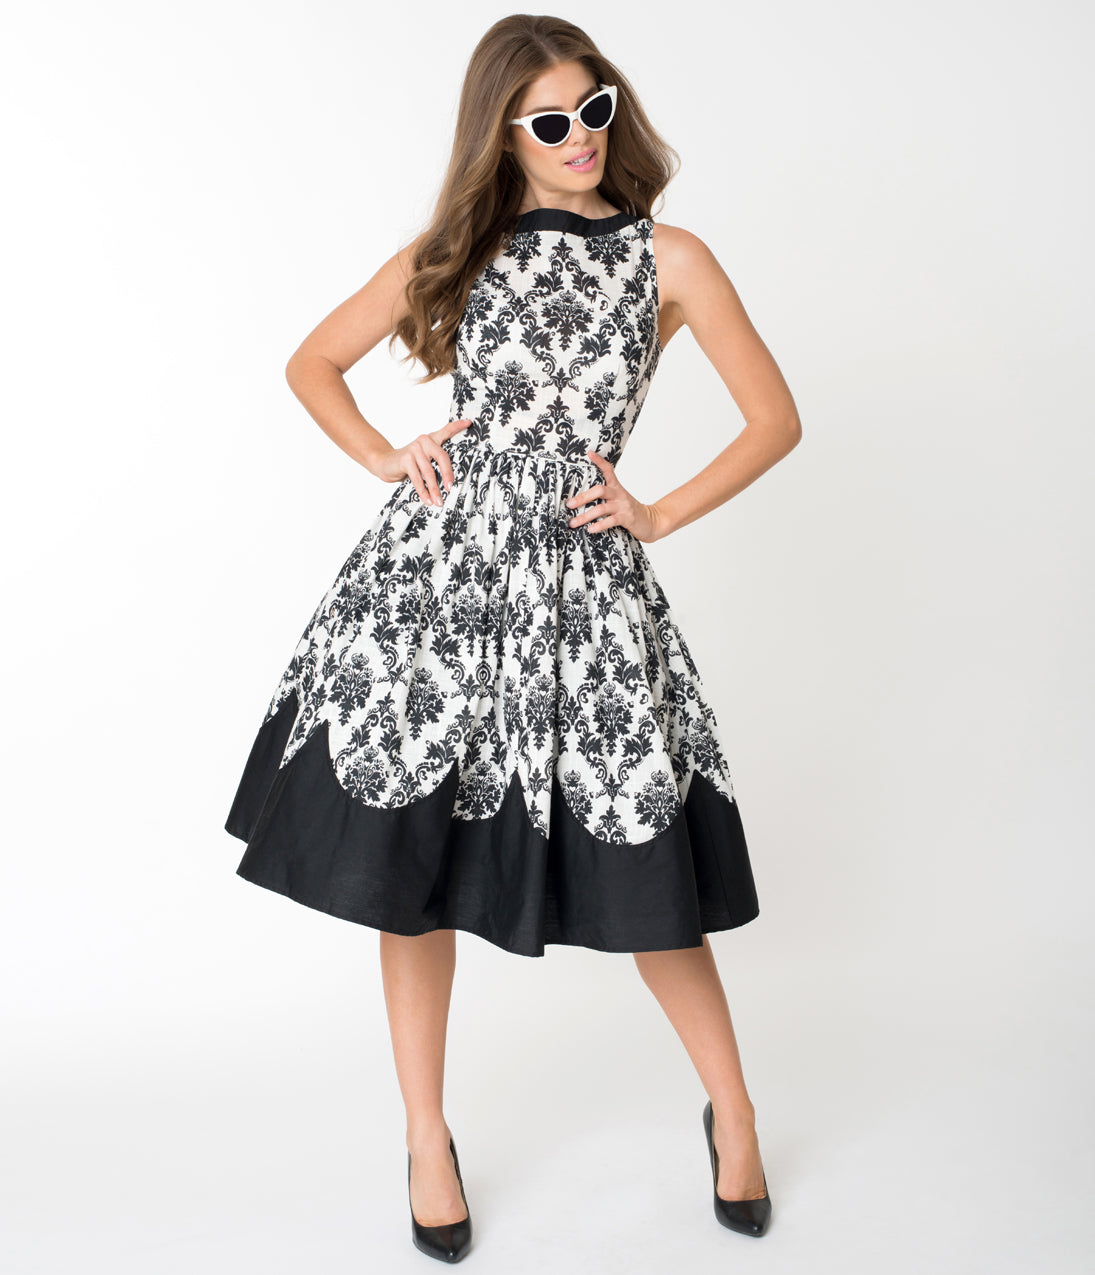 1960s Dresses | 60s Dresses Mod, Mini, Jakie O, Hippie Unique Vintage White  Black Damask Print Sleeveless Detroit Swing Dress $118.00 AT vintagedancer.com